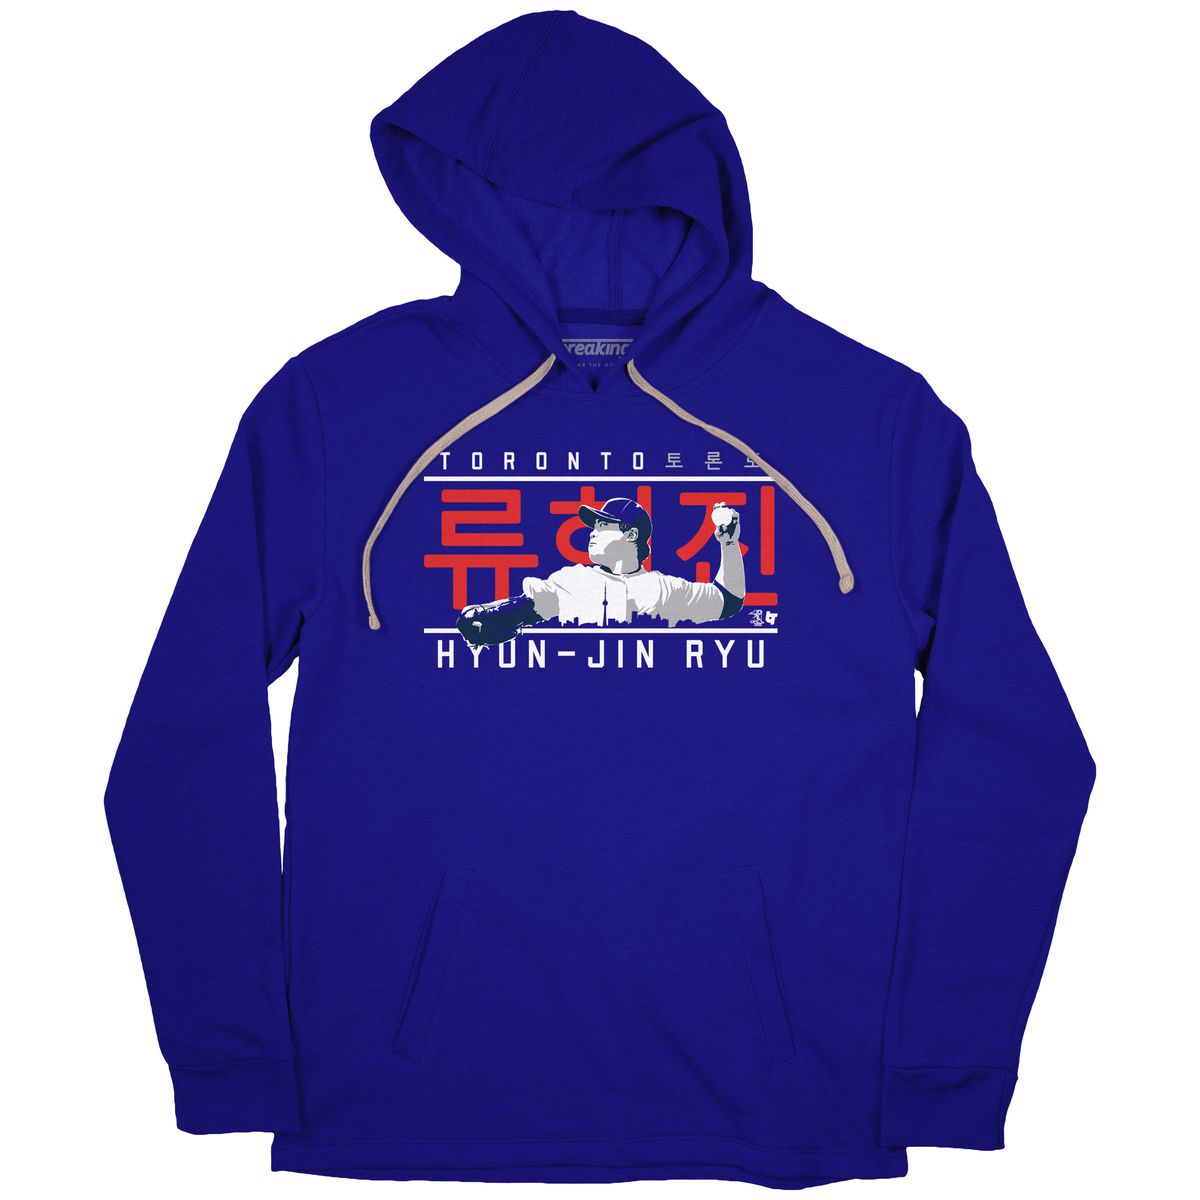 Blue hoodie with an illustration of Toronto Blue Jays pitcher Hyun-Jin Ryu overlaid with the Toronto skyline. Behind him is his name in Korean 류현진.